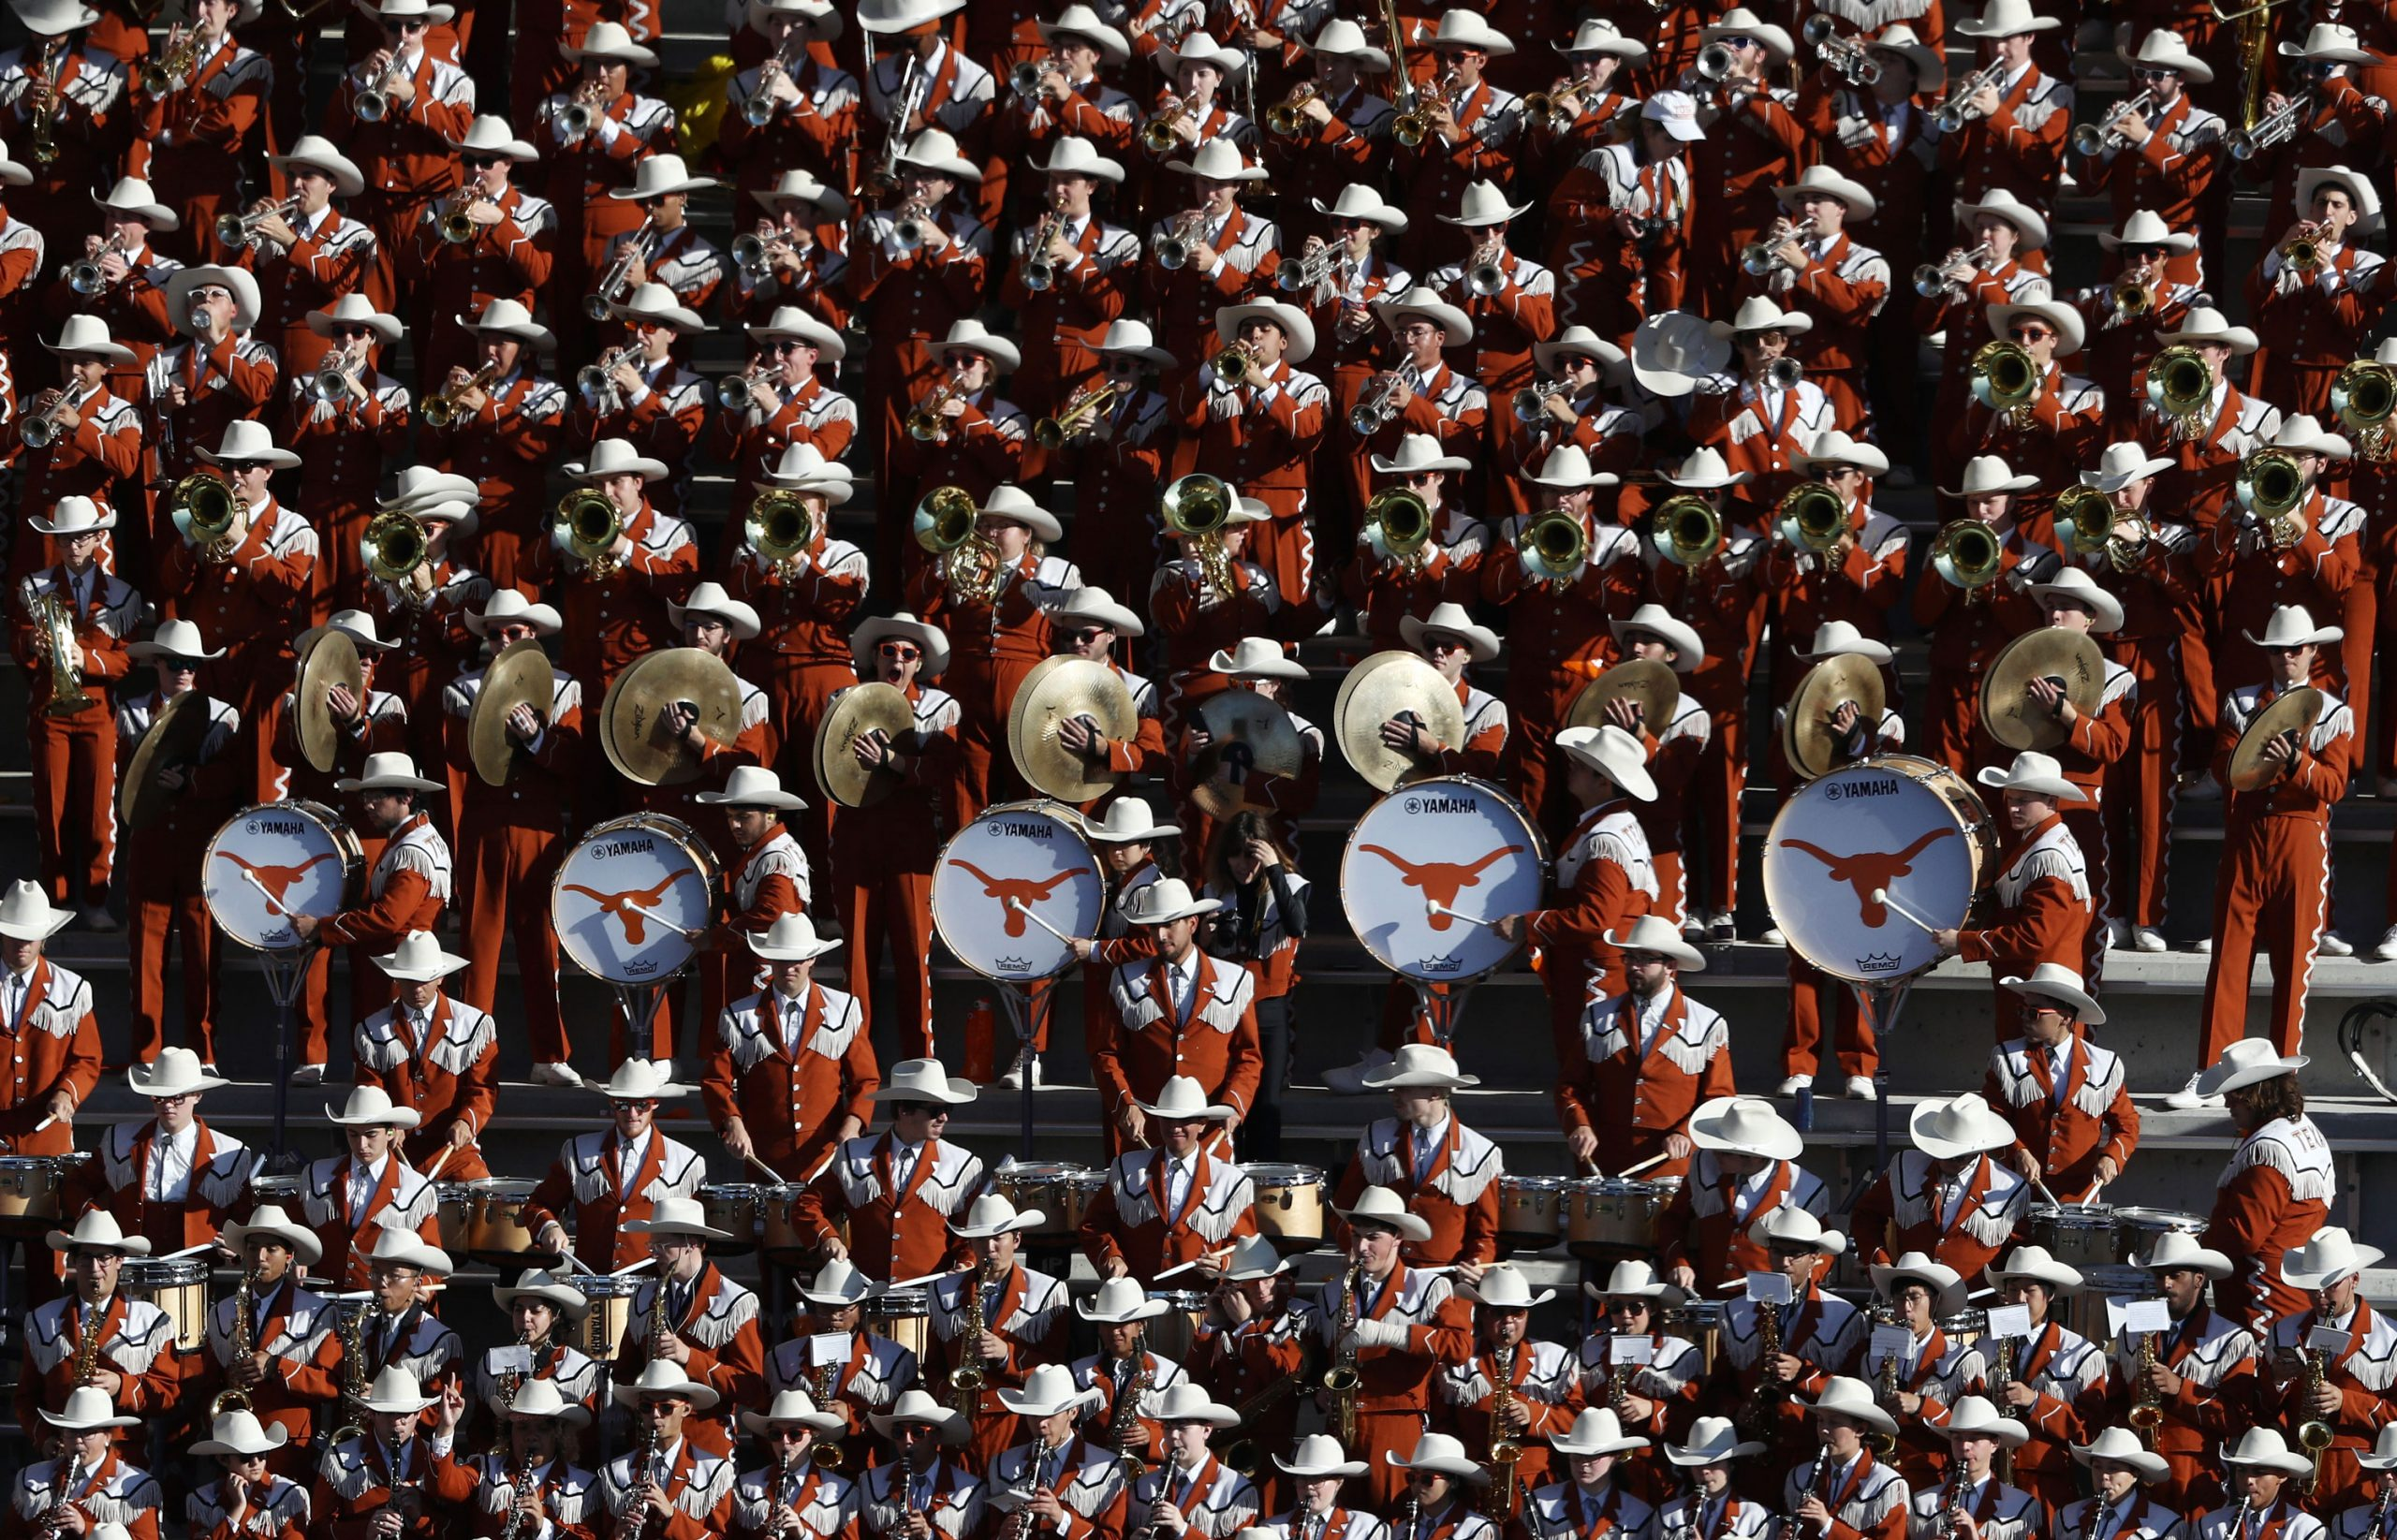 University of Texas band won't play its alma mater because it was once performed at minstrel shows 6